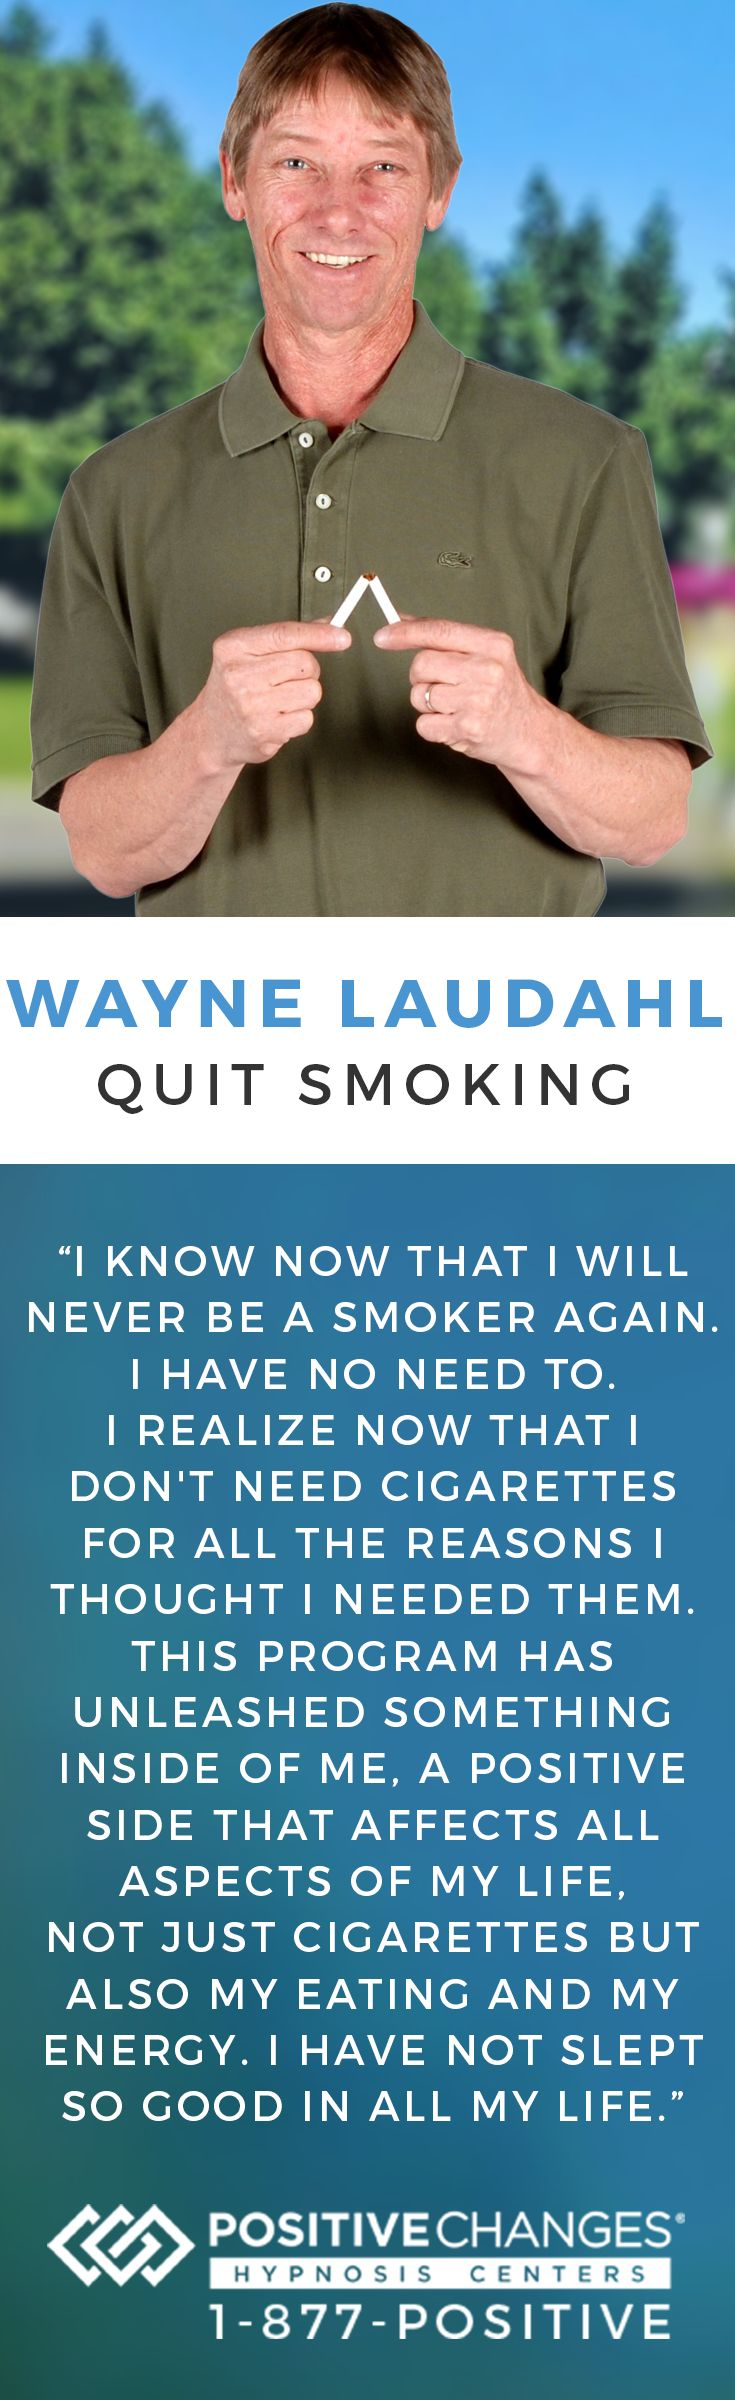 Wayne was able to successfully quit smoking with Positive Changes Hypnosis. Our mission is to help people make Positive Changes in their lives. We have given tens of thousands of people the power to change their habits, behaviors and lives safely and effectively. To learn more, give us a call at 877-POSITIVE today!